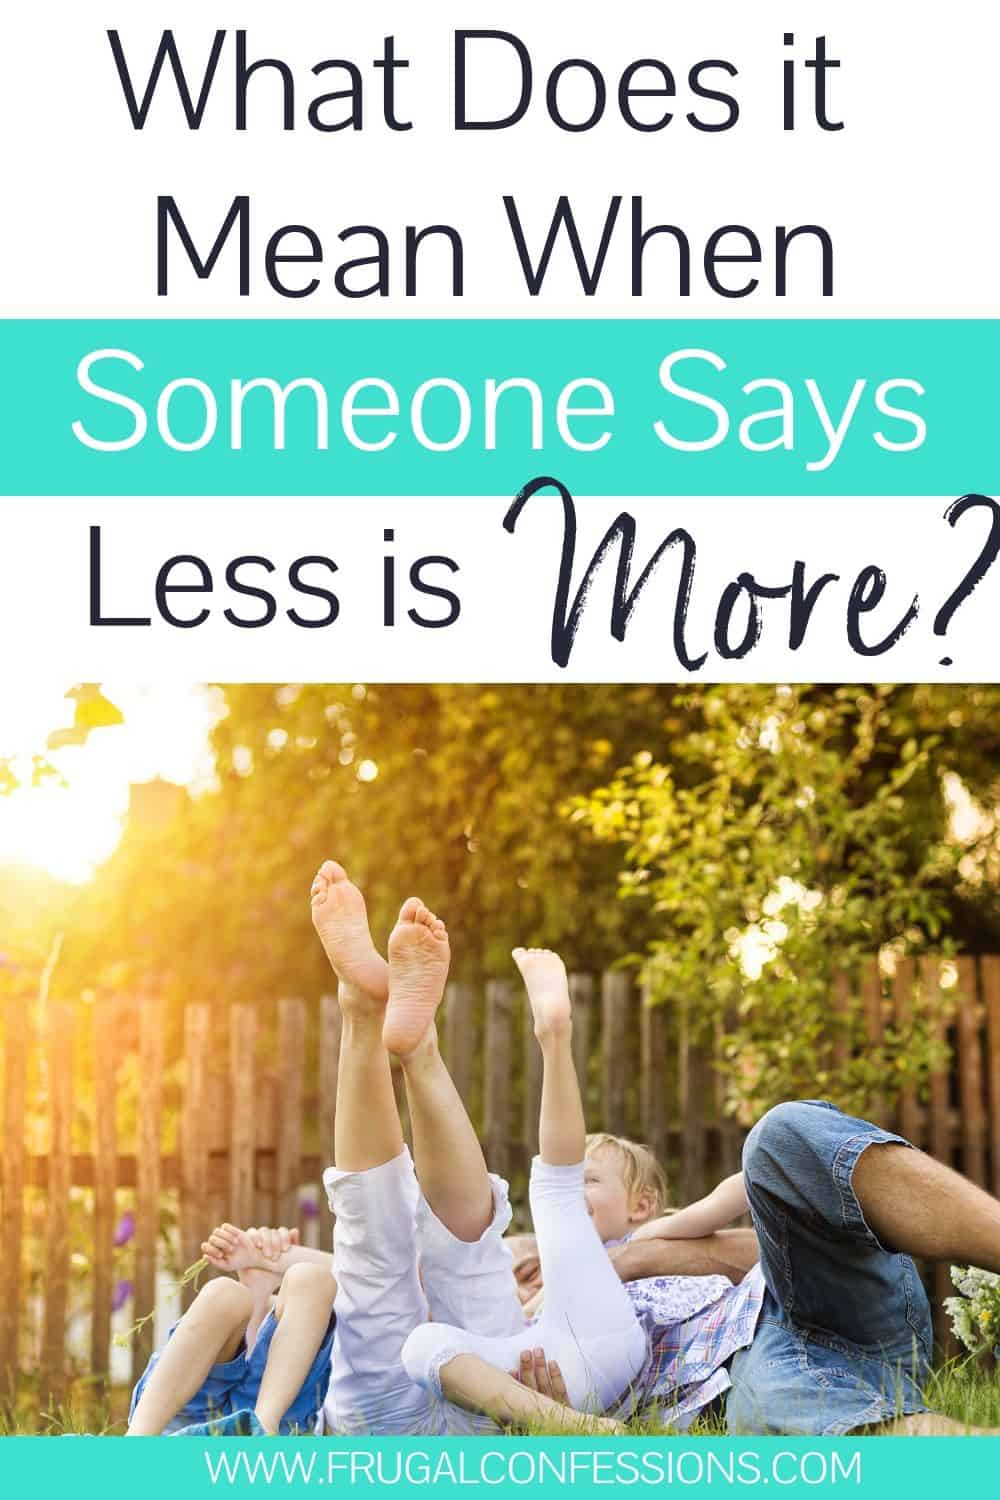 """family wrestling playfully in grass, text overlay """"what does it mean when someone says less is more?"""""""